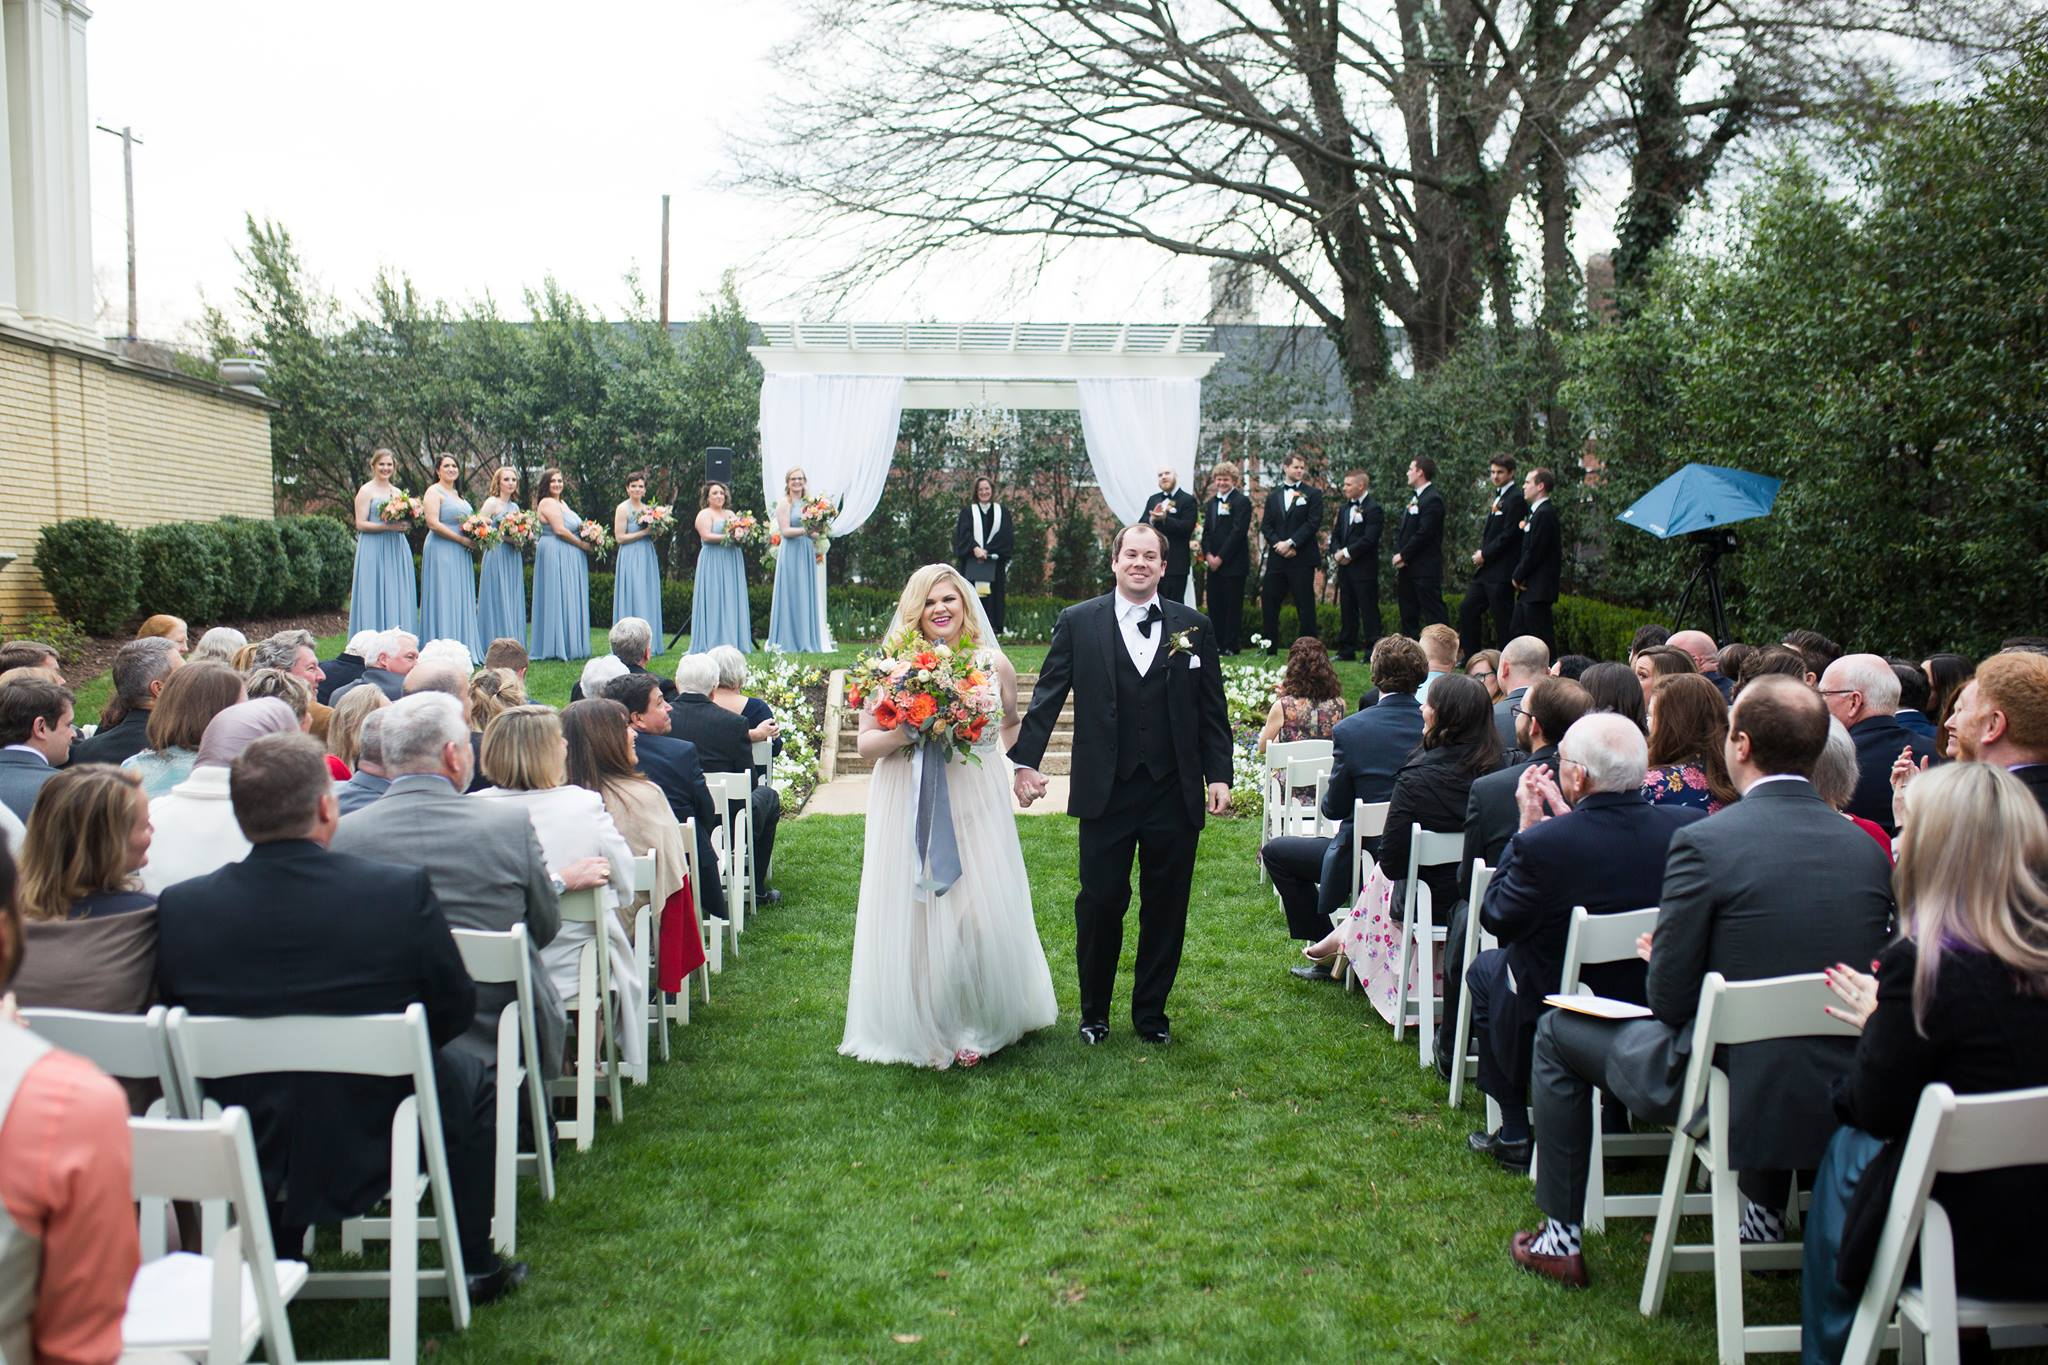 Bride and groom recess from wedding ceremony at Separk Mansion coordinated by Magnificent Moments Weddings